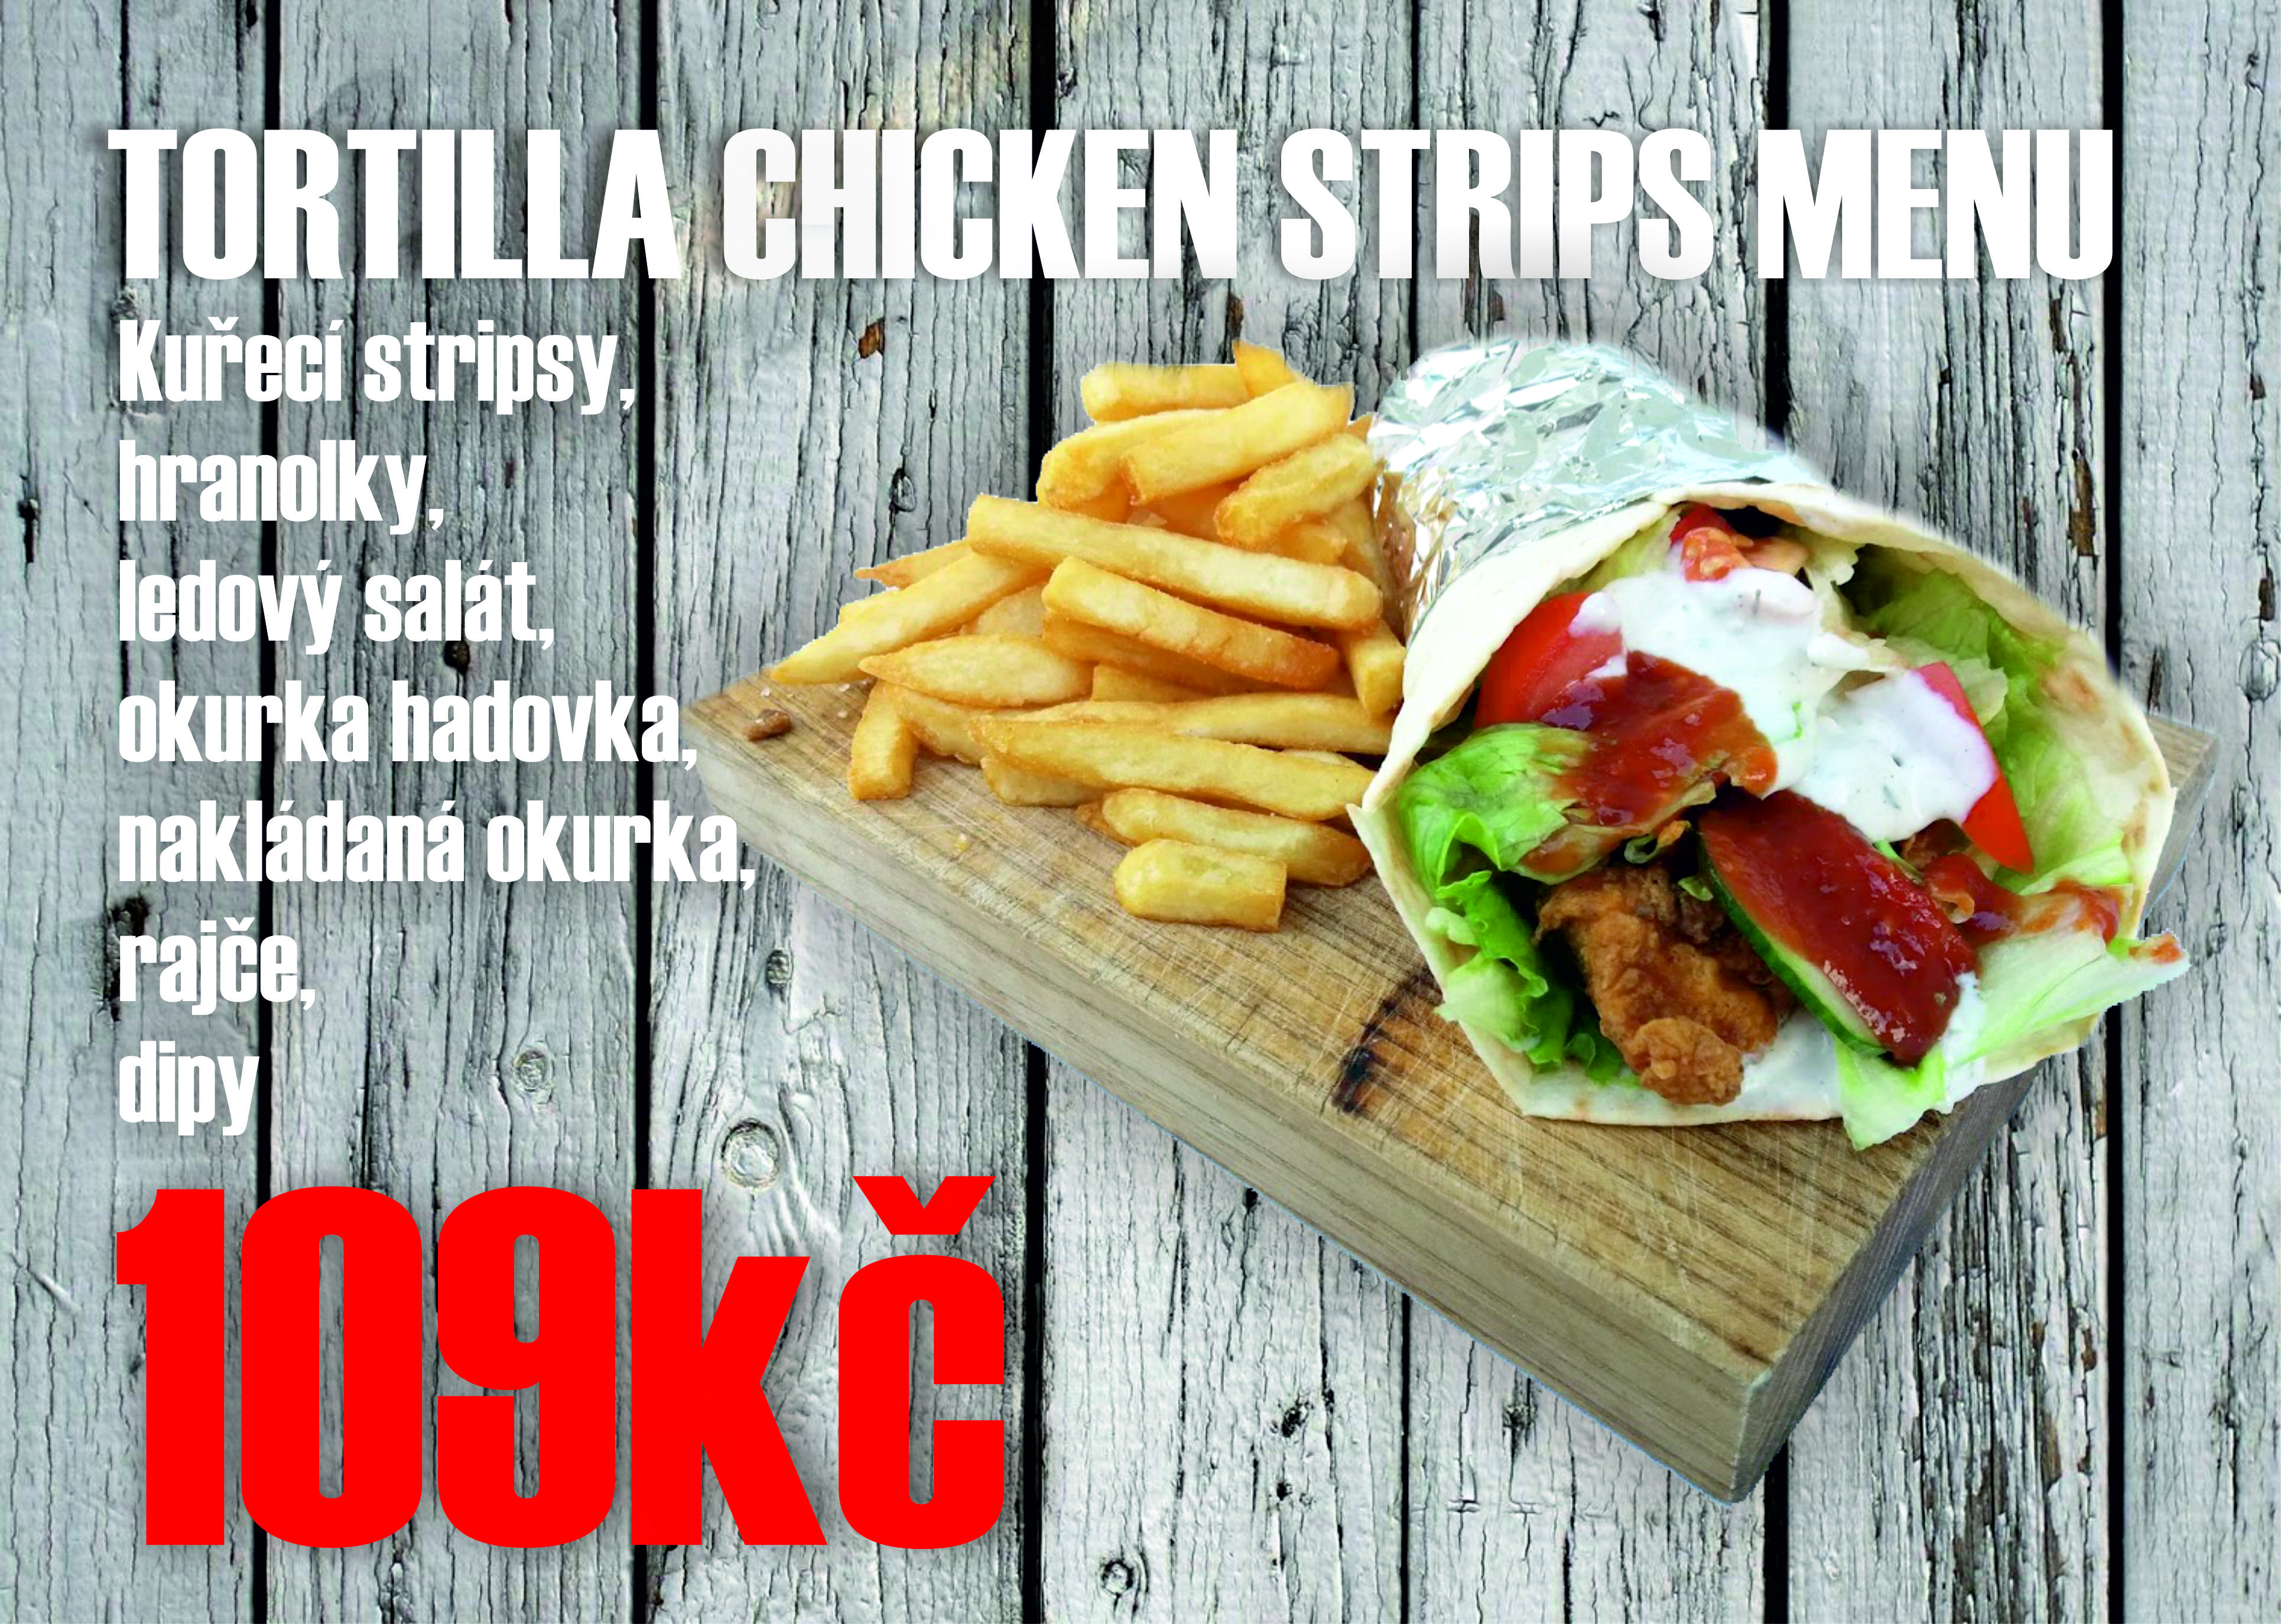 TORTILLA CHICKEN STRIPS MENU